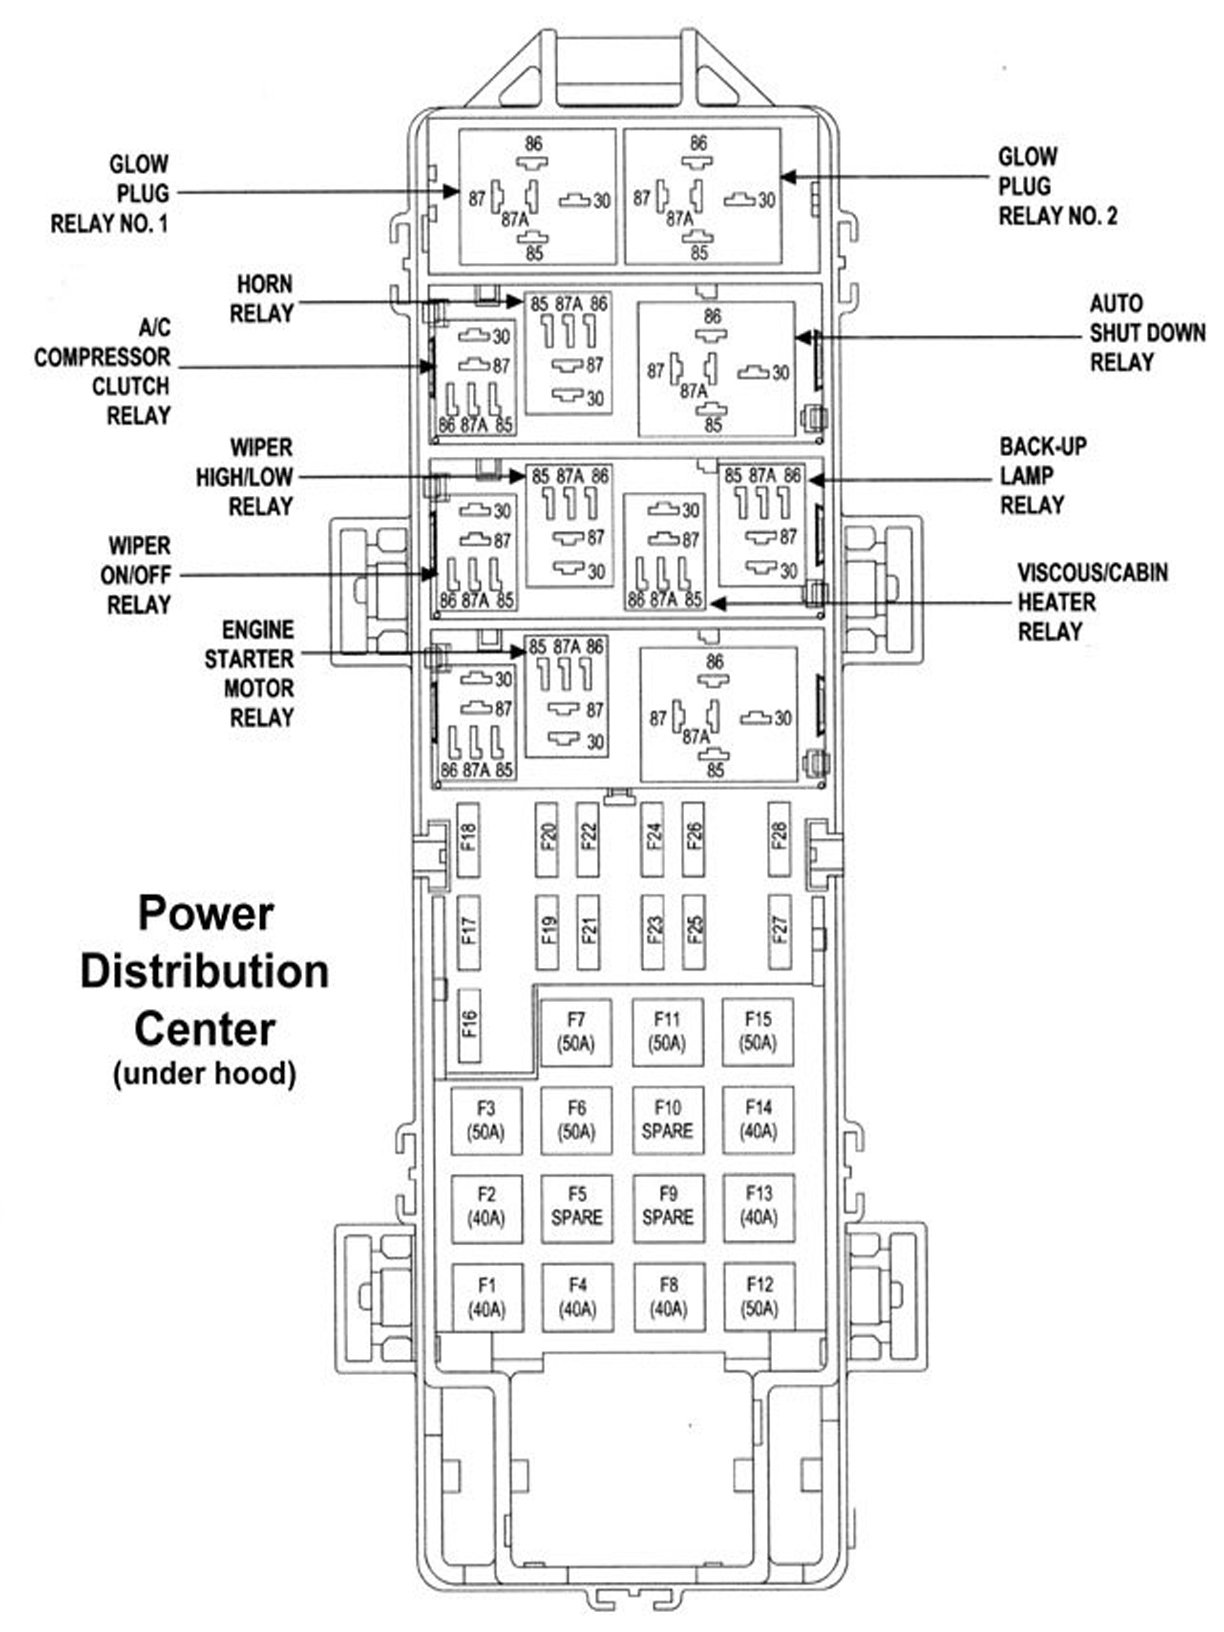 AAAAAAAAug 28 Fuse Box 04 91415 jeep grand cherokee wj 1999 to 2004 fuse box diagram cherokeeforum 1999 jeep xj fuse box diagram at nearapp.co